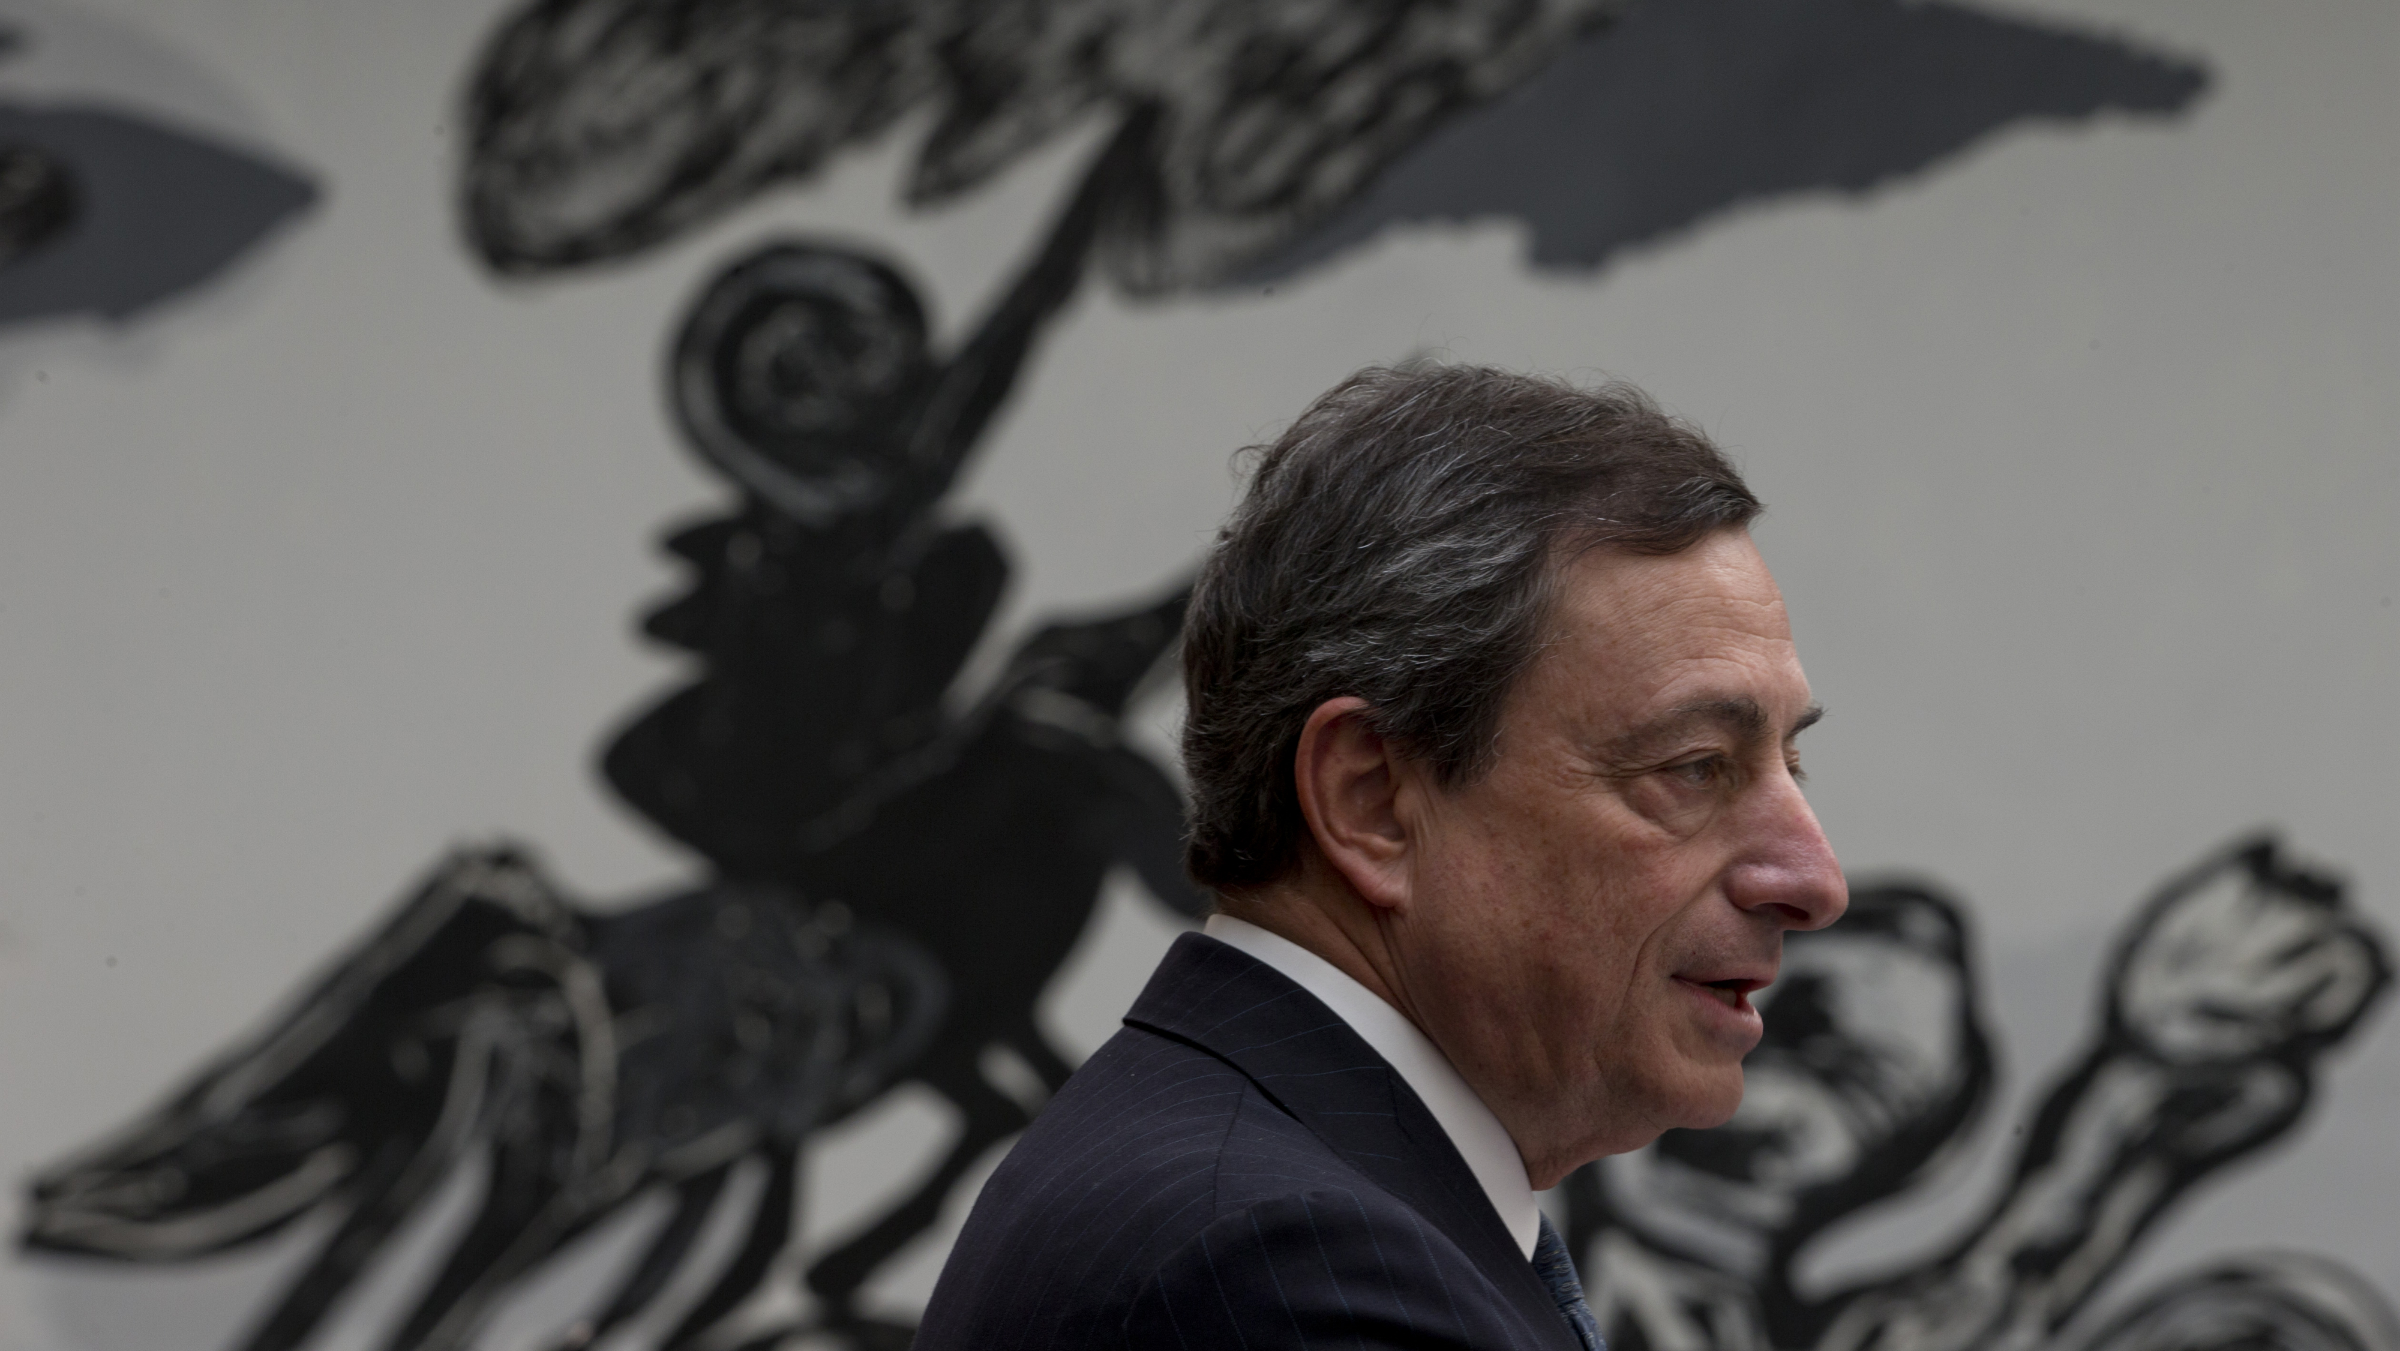 """A work of art is seen in the background as European Central Bank President Mario Draghi addresses students during a session of """"Room for Discussion"""" at the Faculty of Economics of the UvA, or University of Amsterdam, Netherlands, Monday April 15, 2013. (AP Photo/Peter Dejong)"""